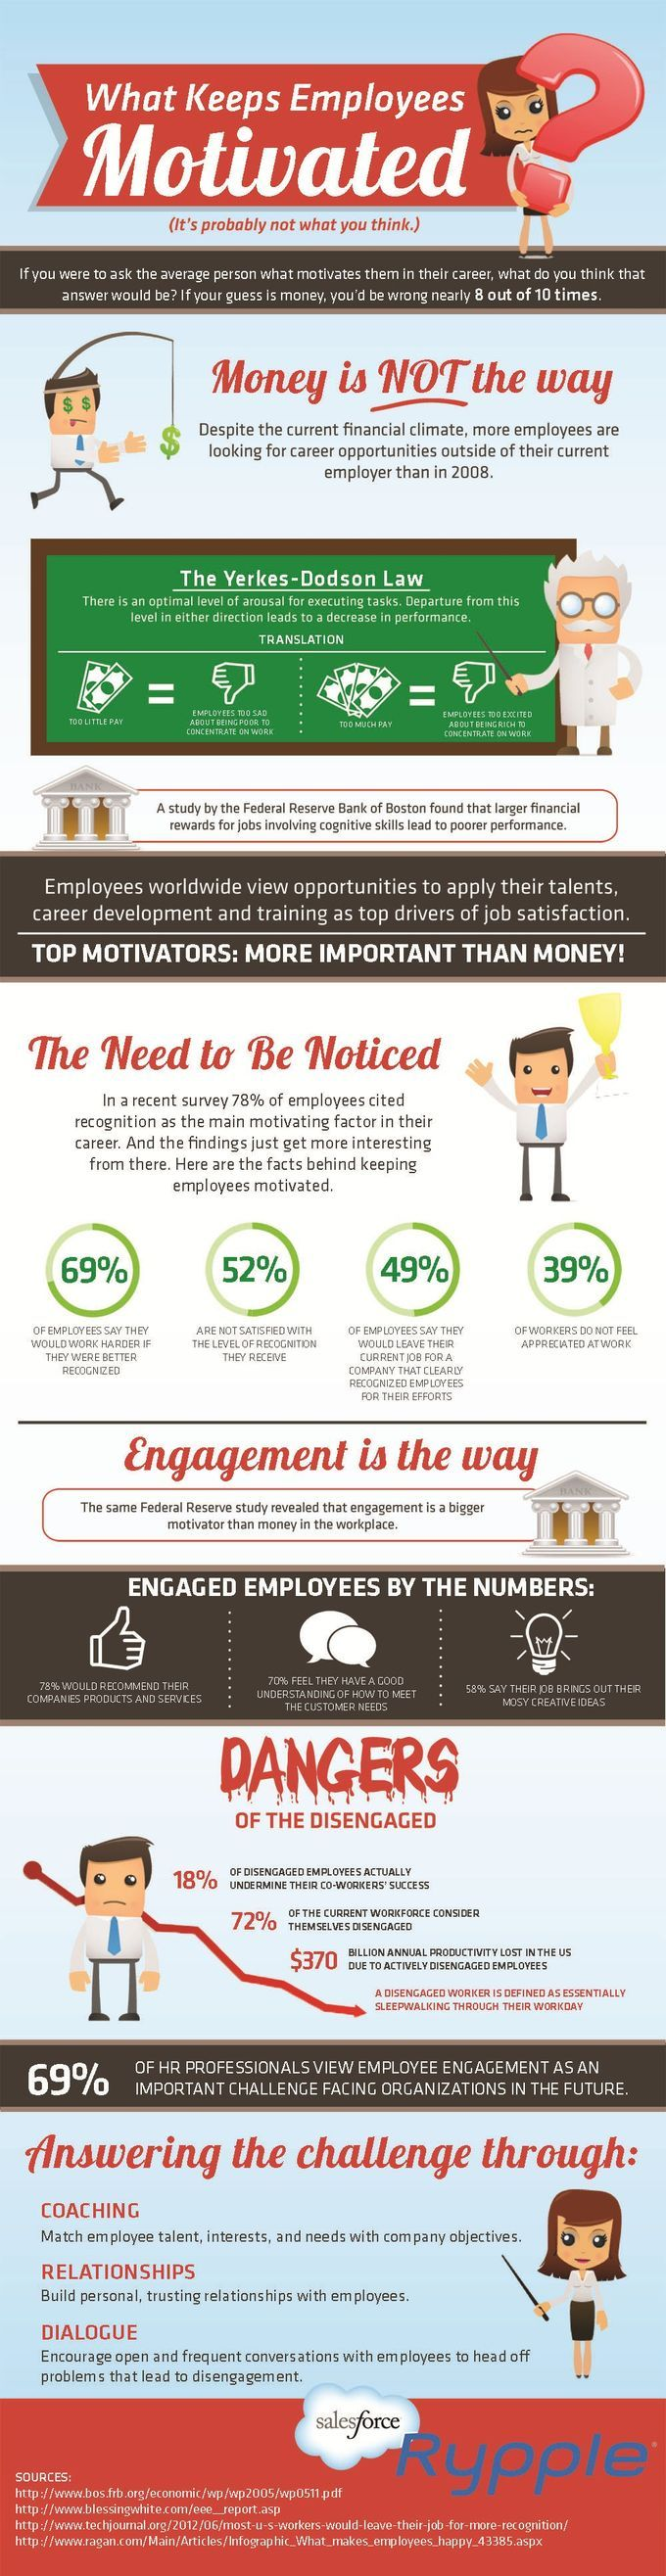 Pocket : How to Motivate Employees [infographic]